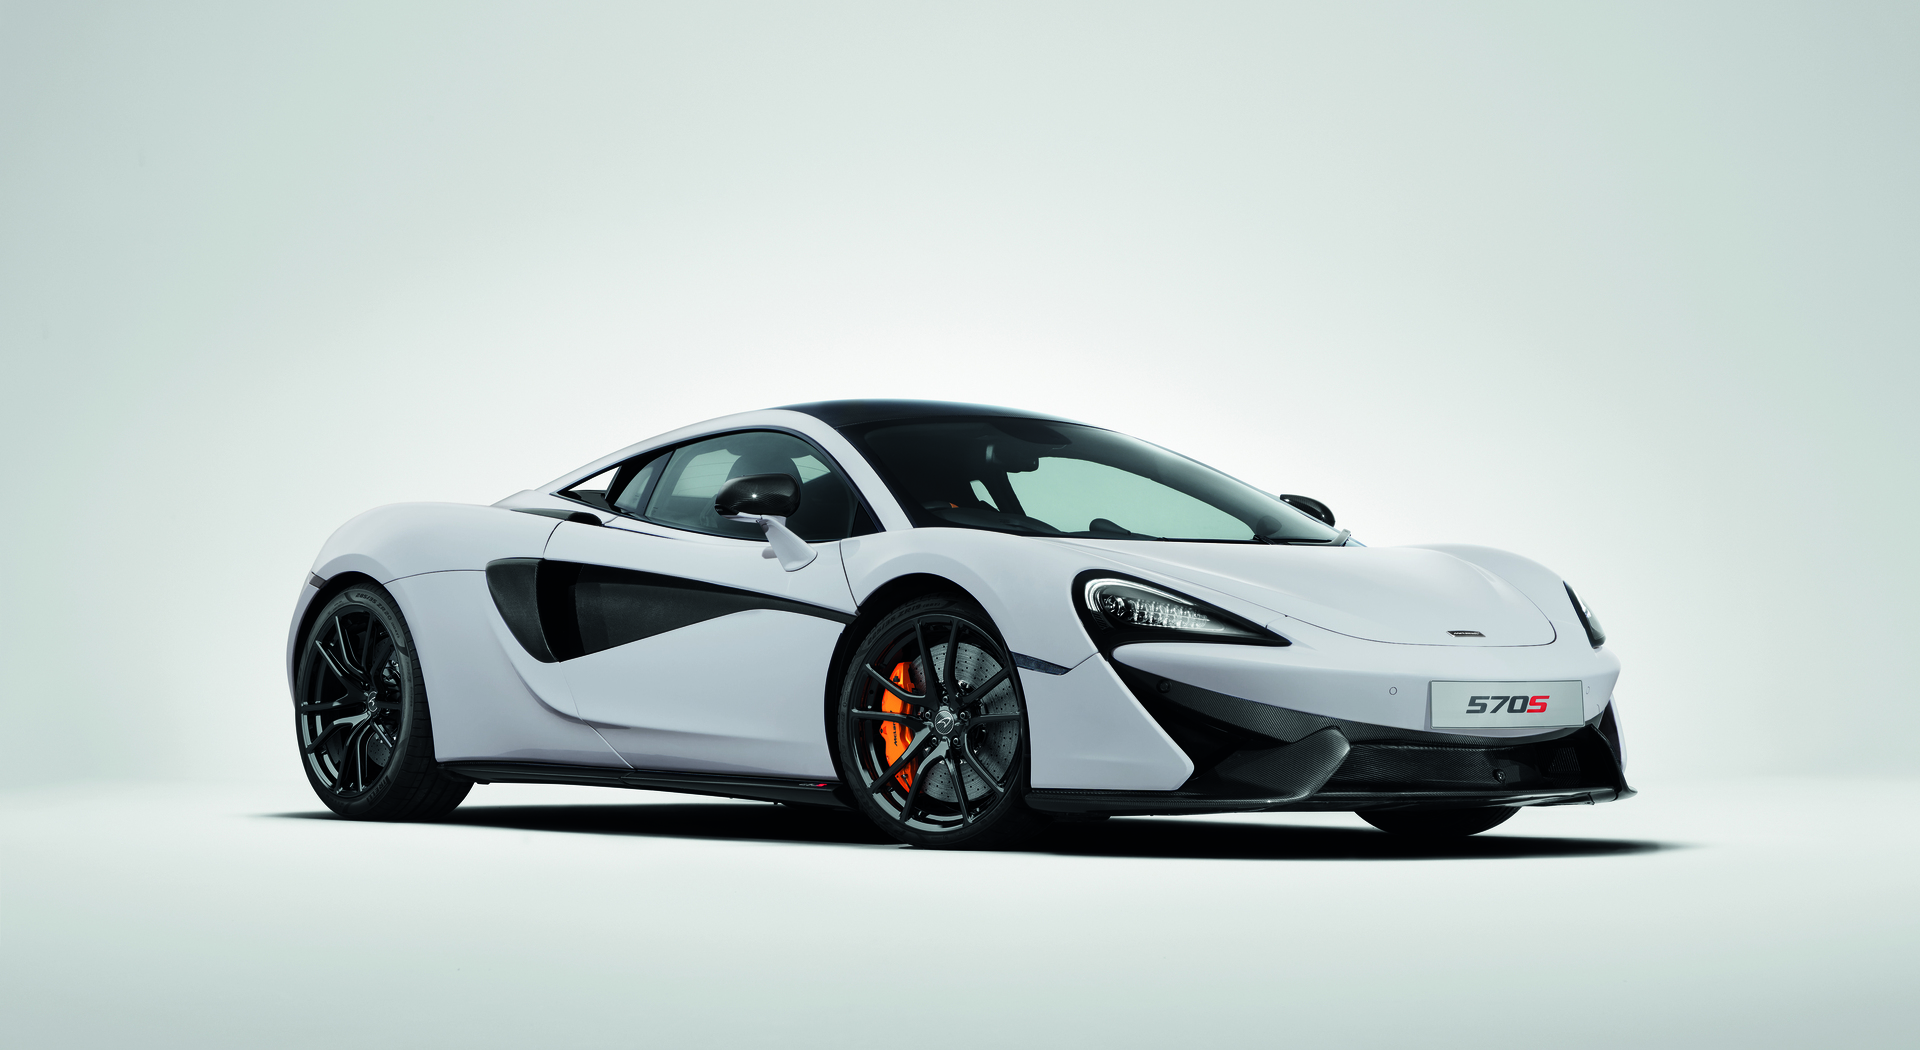 McLaren Gloss Black Wheels